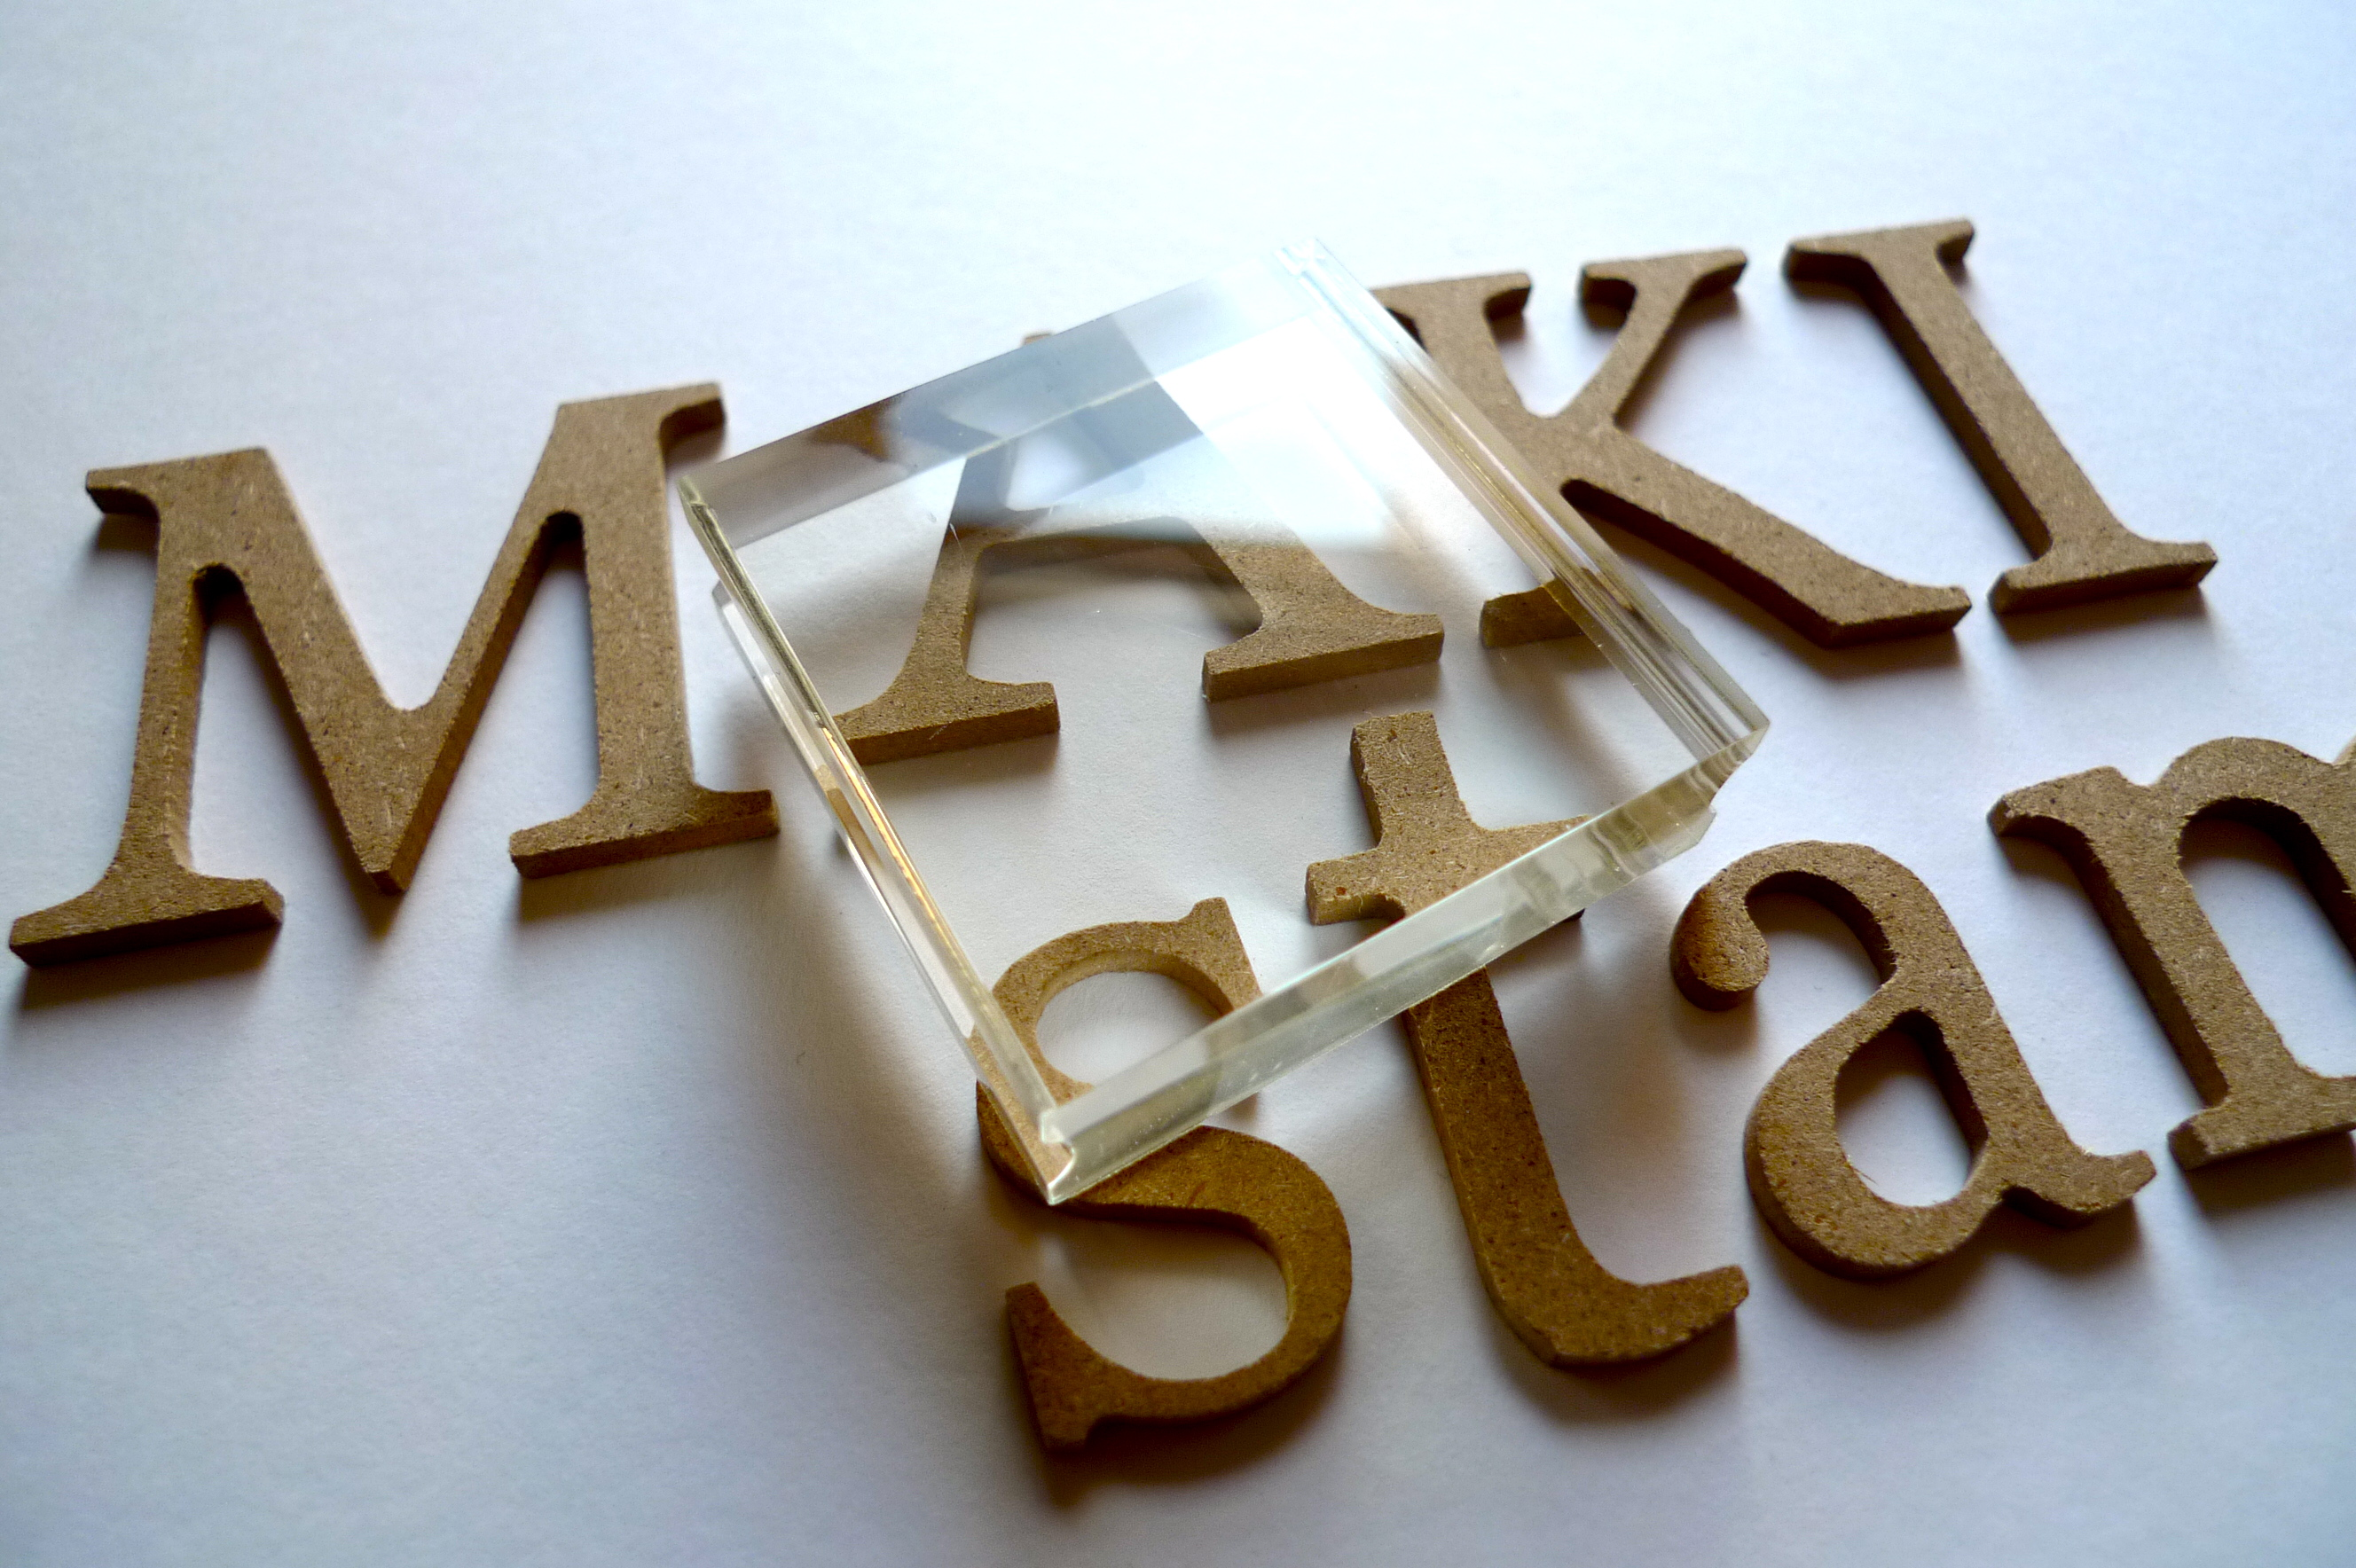 Rubber stamps or Cling Stamps